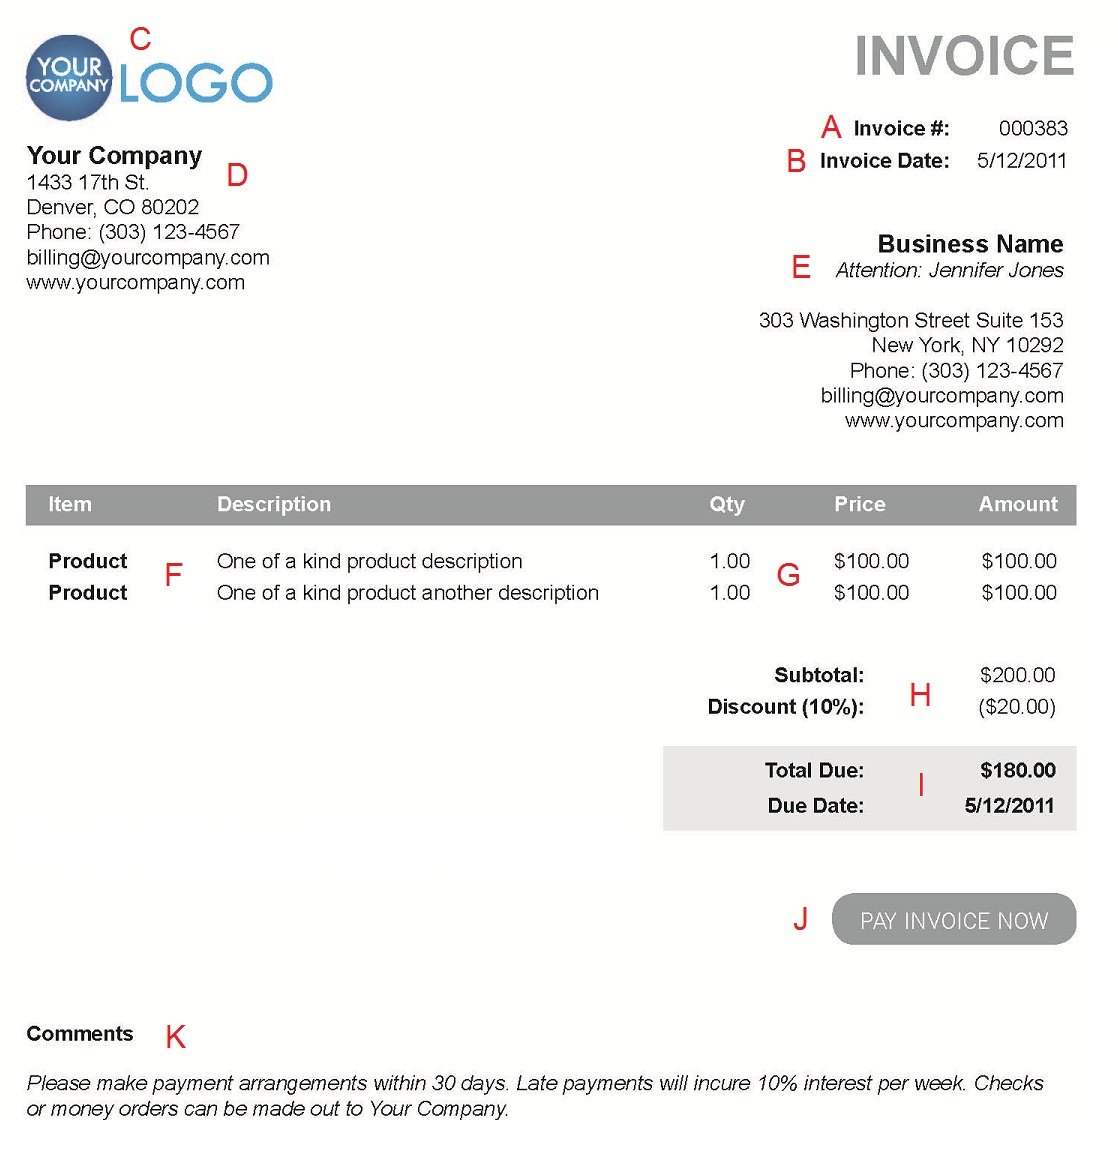 Reliefworkersus  Prepossessing The  Different Sections Of An Electronic Payment Invoice With Marvelous A  With Alluring Google Spreadsheet Invoice Also Dodge Durango Invoice Price In Addition Accounts Receivable Invoice And Photo Invoice Template As Well As Invoice Price Of Bond Additionally How To Find Out Dealer Invoice From Paysimplecom With Reliefworkersus  Marvelous The  Different Sections Of An Electronic Payment Invoice With Alluring A  And Prepossessing Google Spreadsheet Invoice Also Dodge Durango Invoice Price In Addition Accounts Receivable Invoice From Paysimplecom